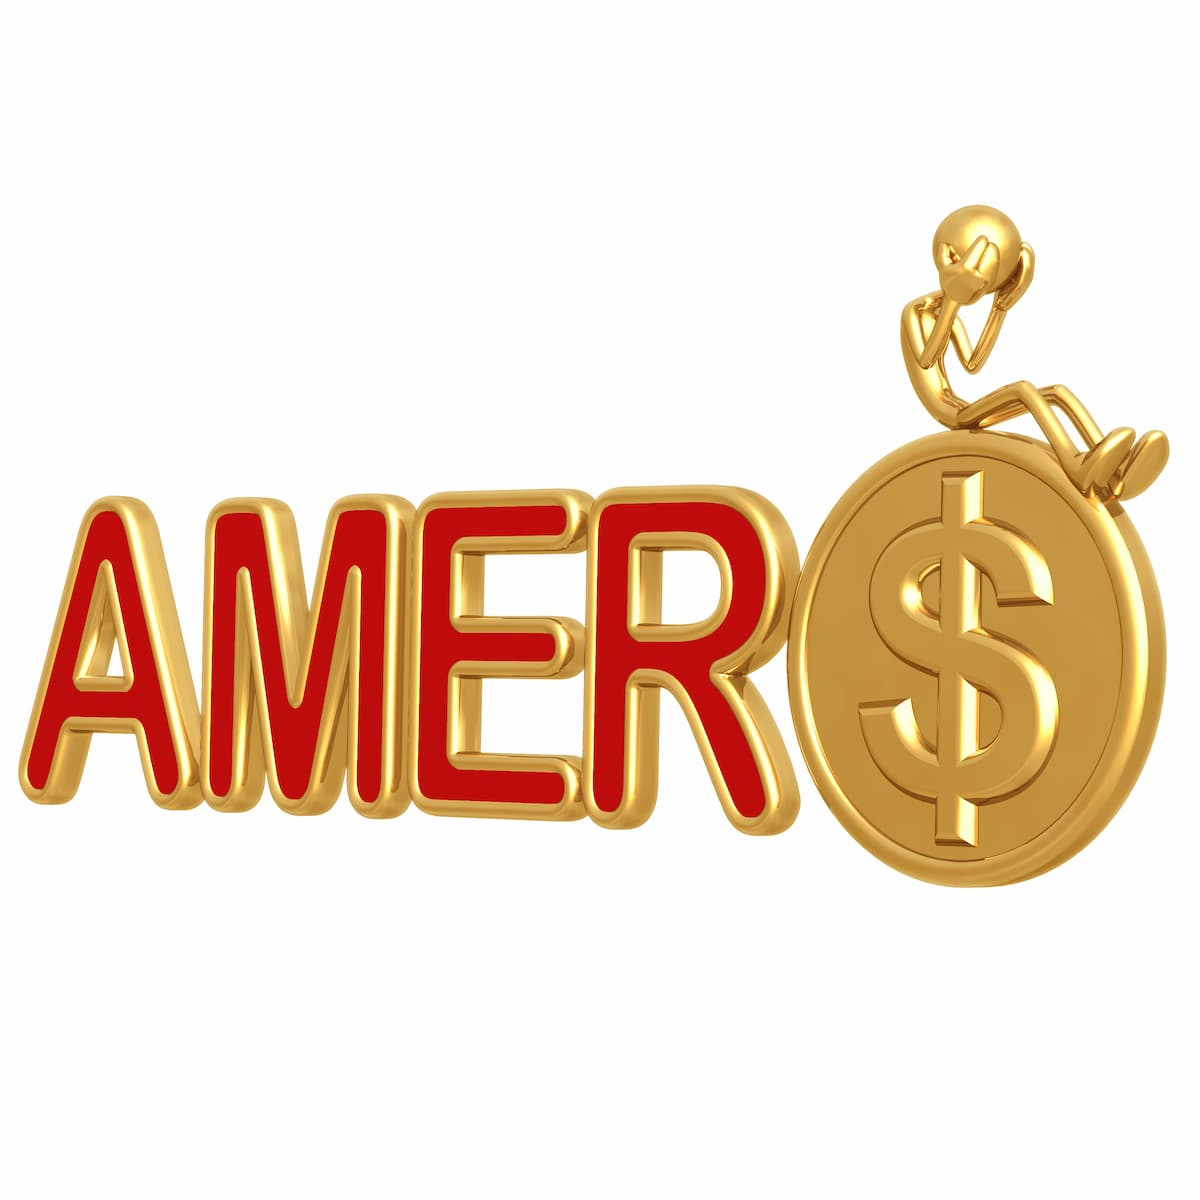 Amero Coin with dollar sign